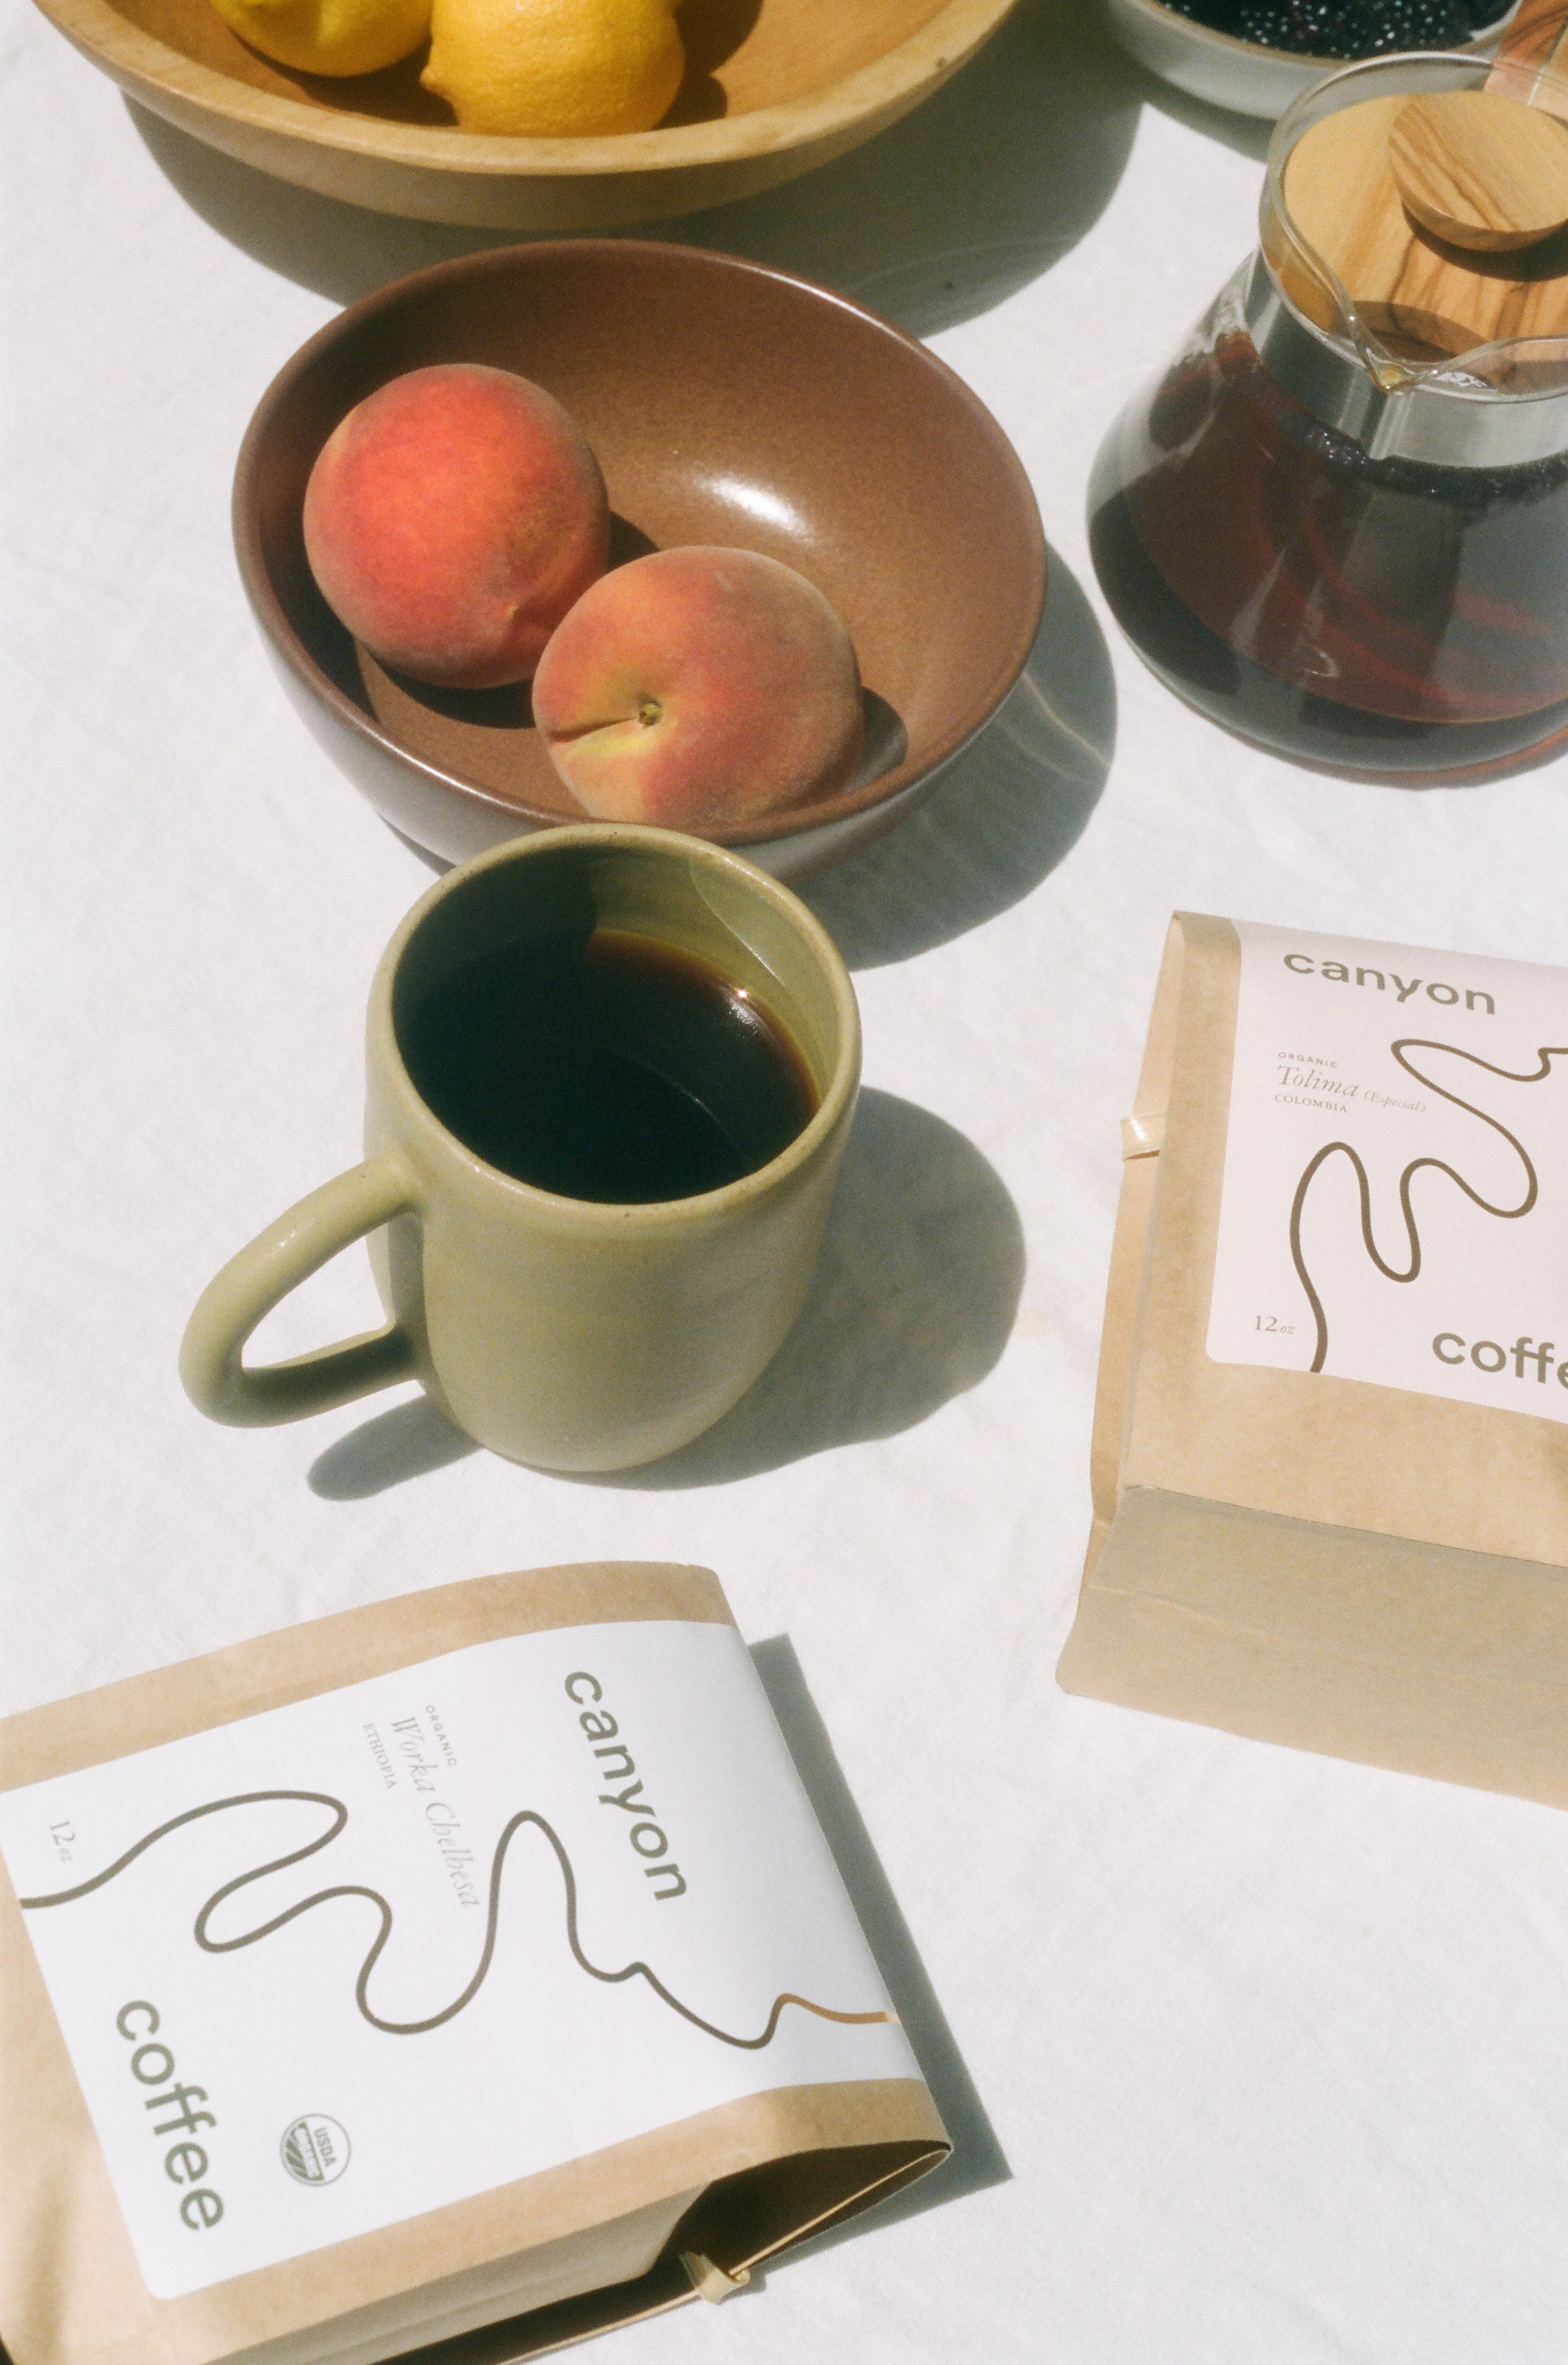 Bags of Canyon Coffee on a table with fruit and ceramic mug.